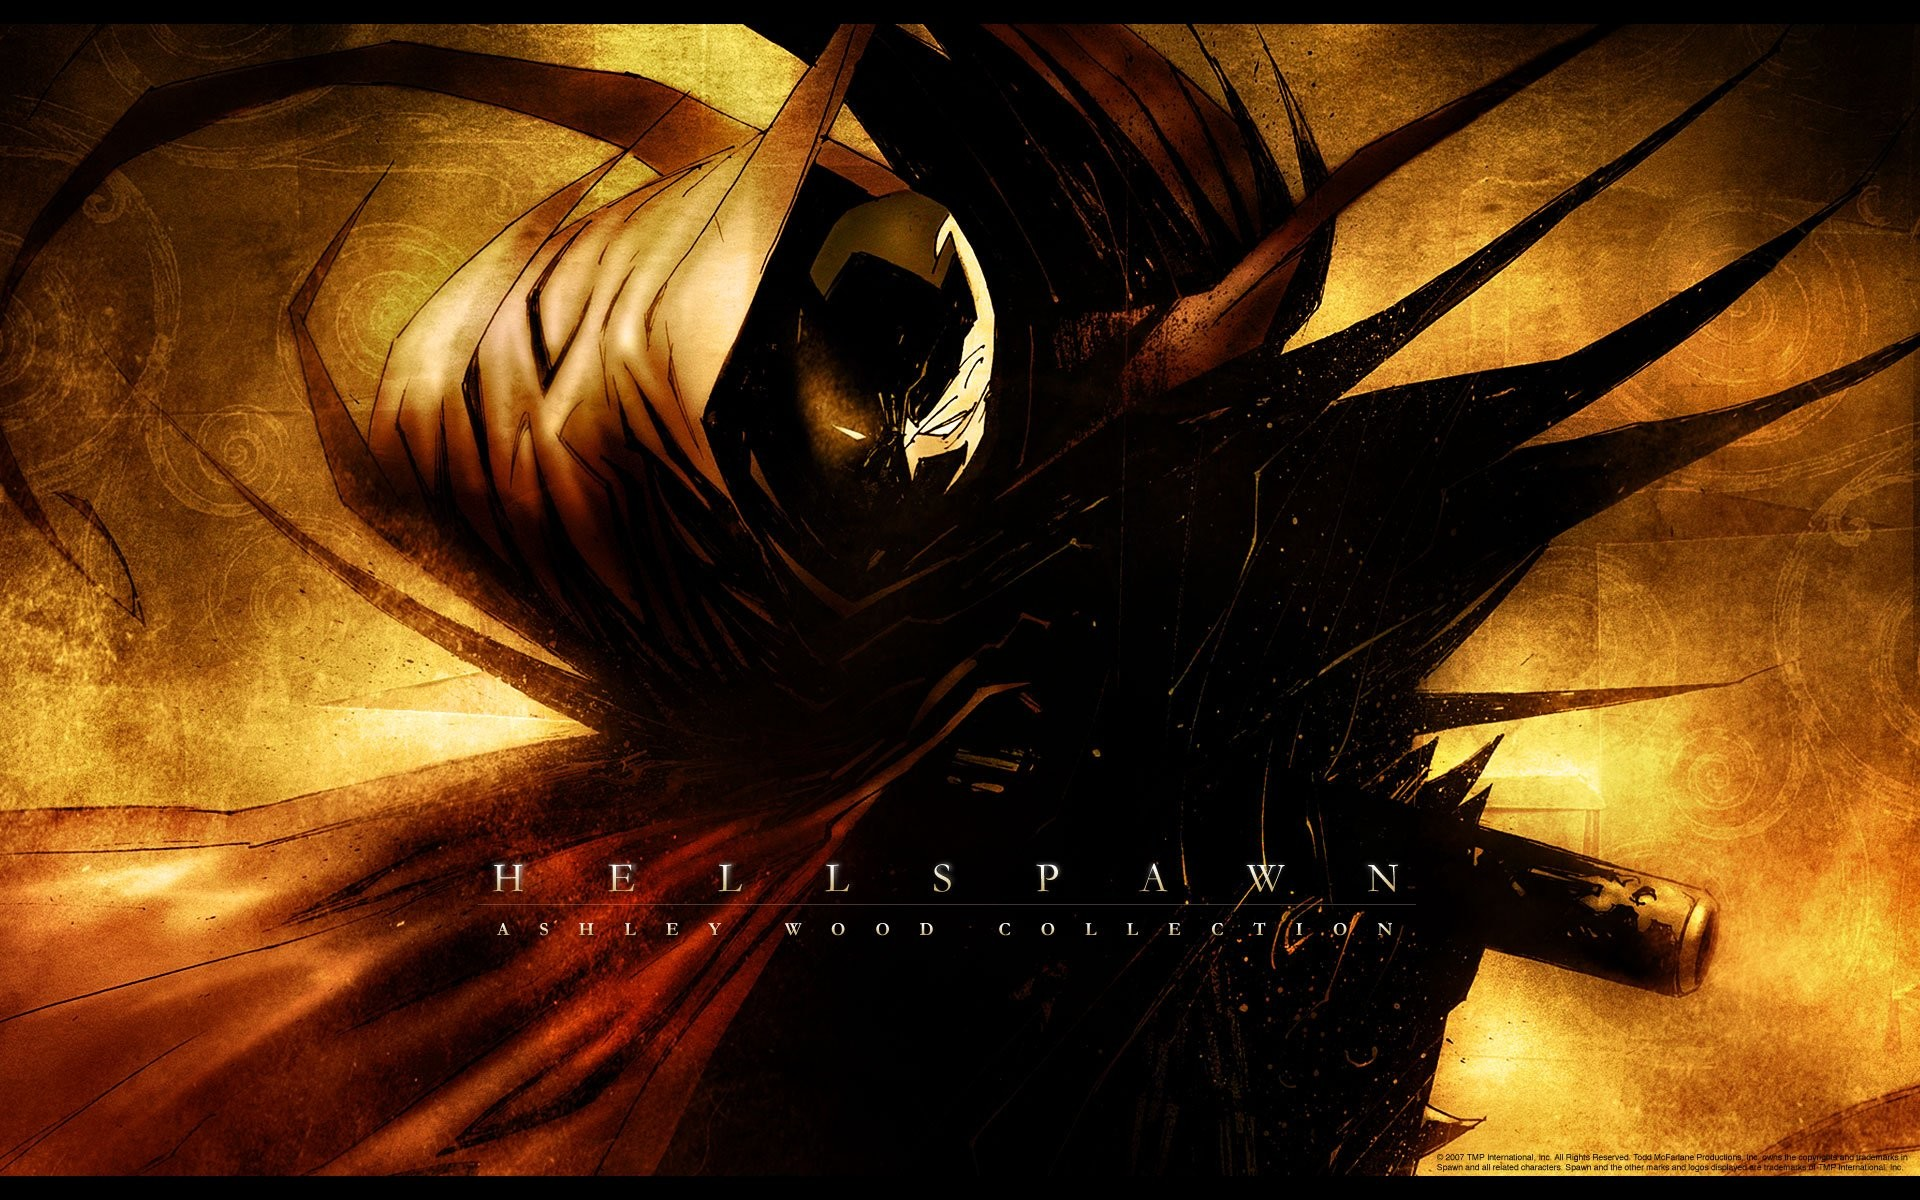 Hell spawn wallpaper 69 images 1920x1200 superhero from hell spawn comics wallpapersvol02 19201200 voltagebd Images